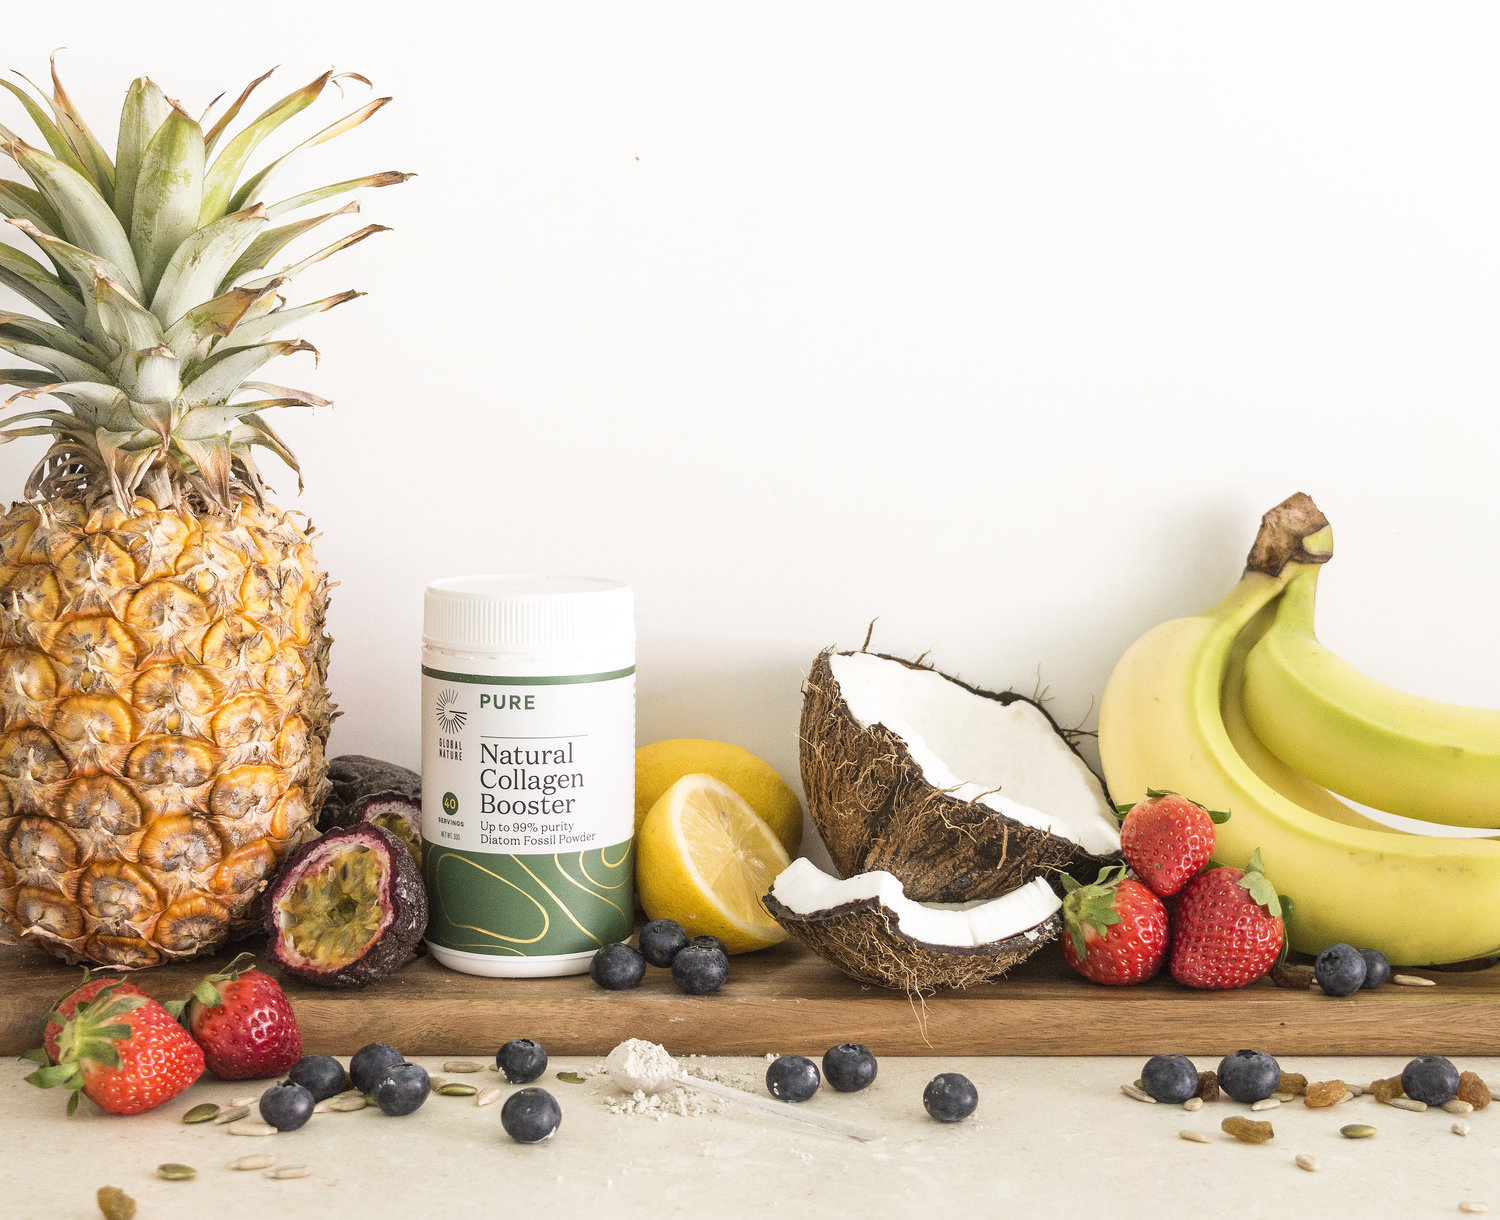 natural collagen booster surrounded by fresh tropical fruits and berries